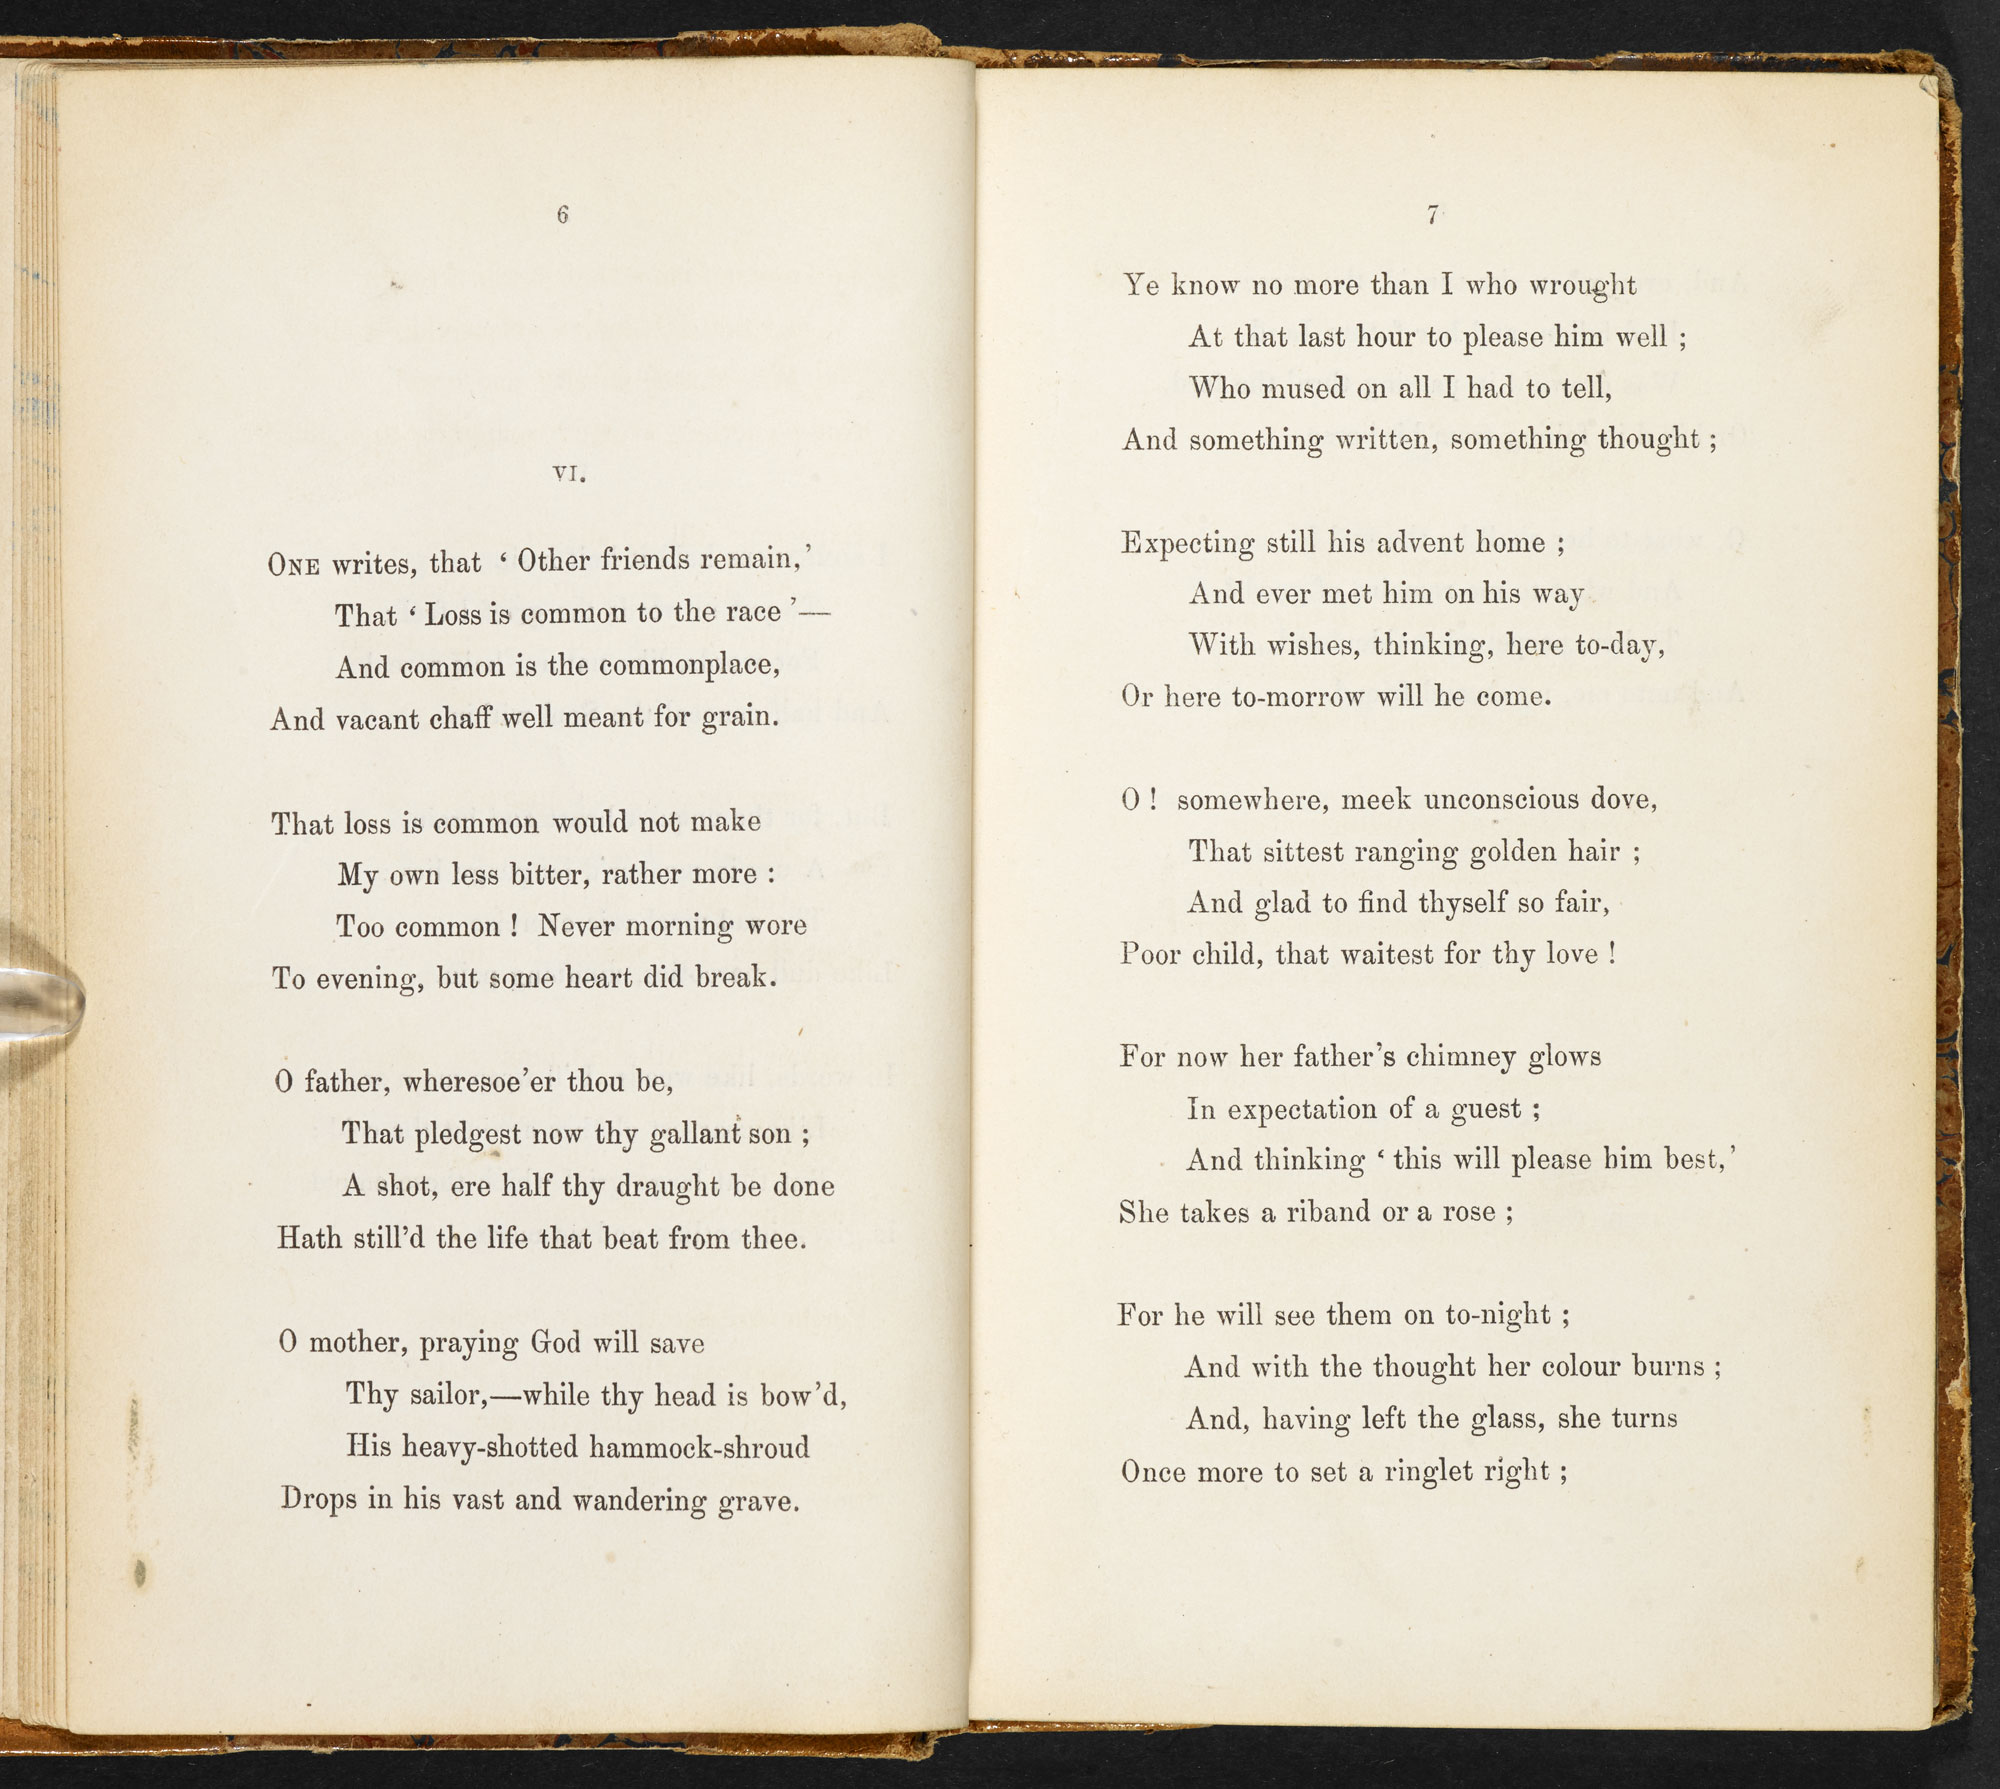 In Memoriam A.H.H. by Alfred Lord Tennyson [page: 6-7]